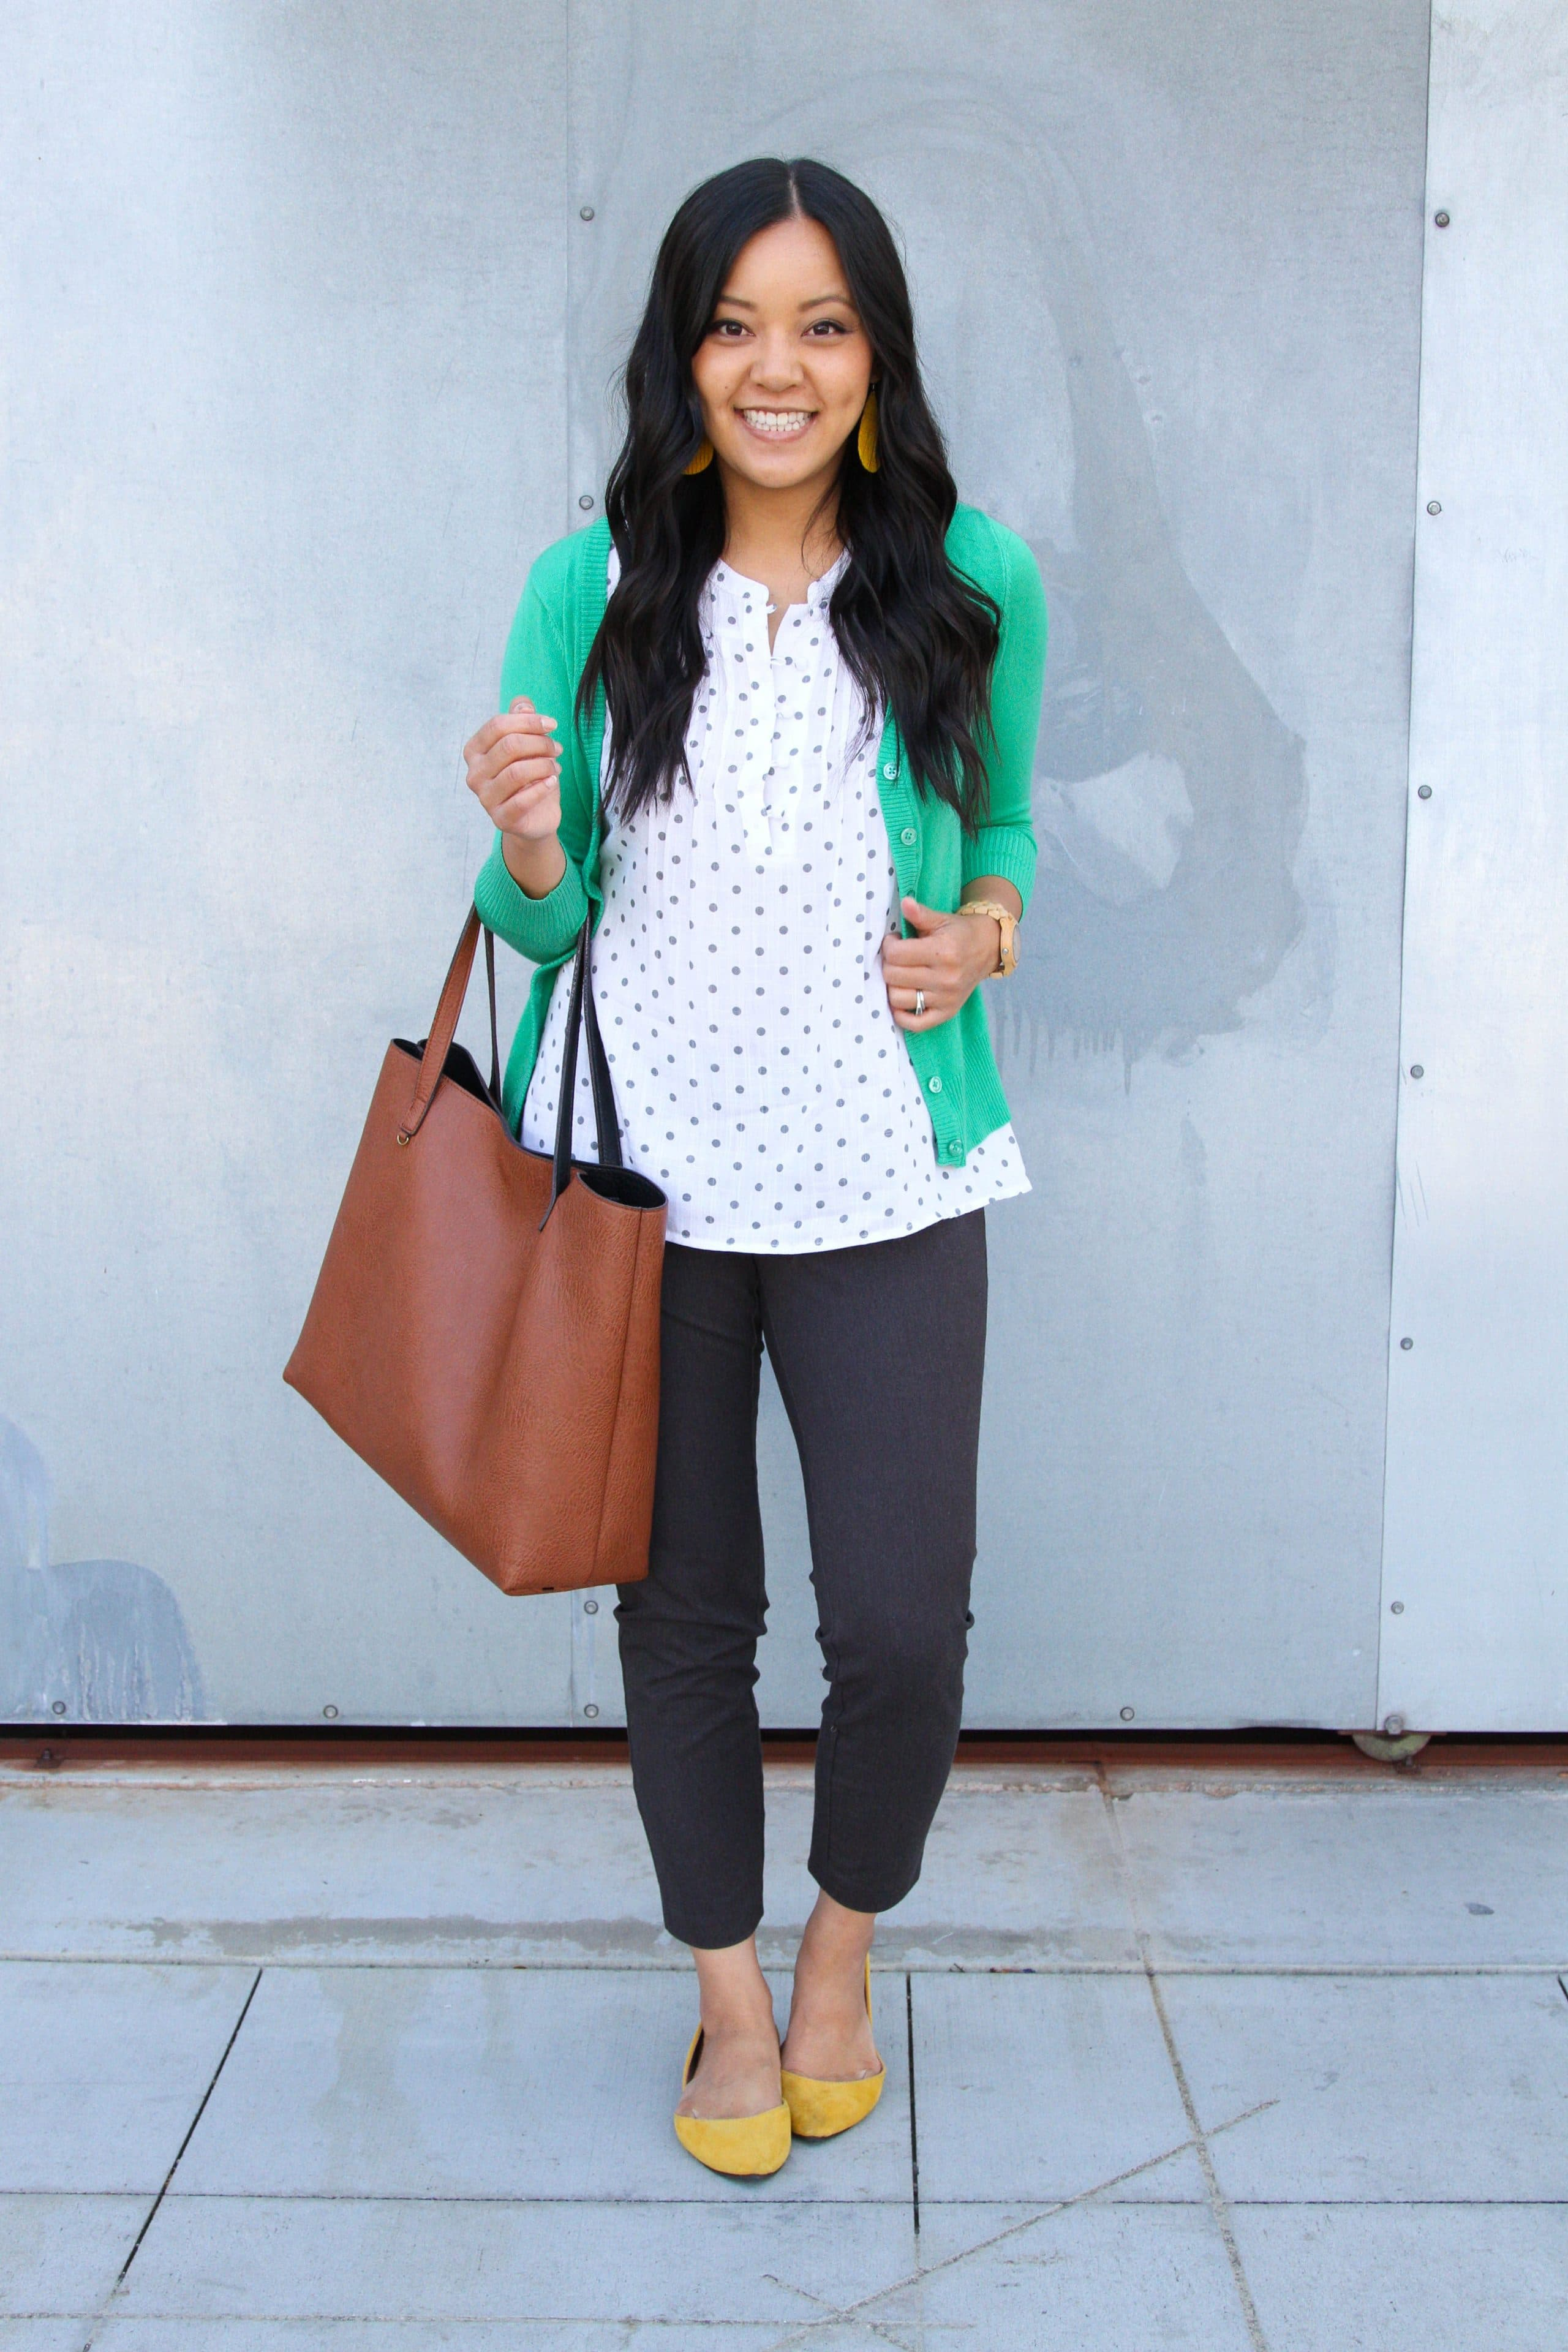 Green Cardigan + Gray Chinos + Mustard Flats + Cognac Bag + Blouse